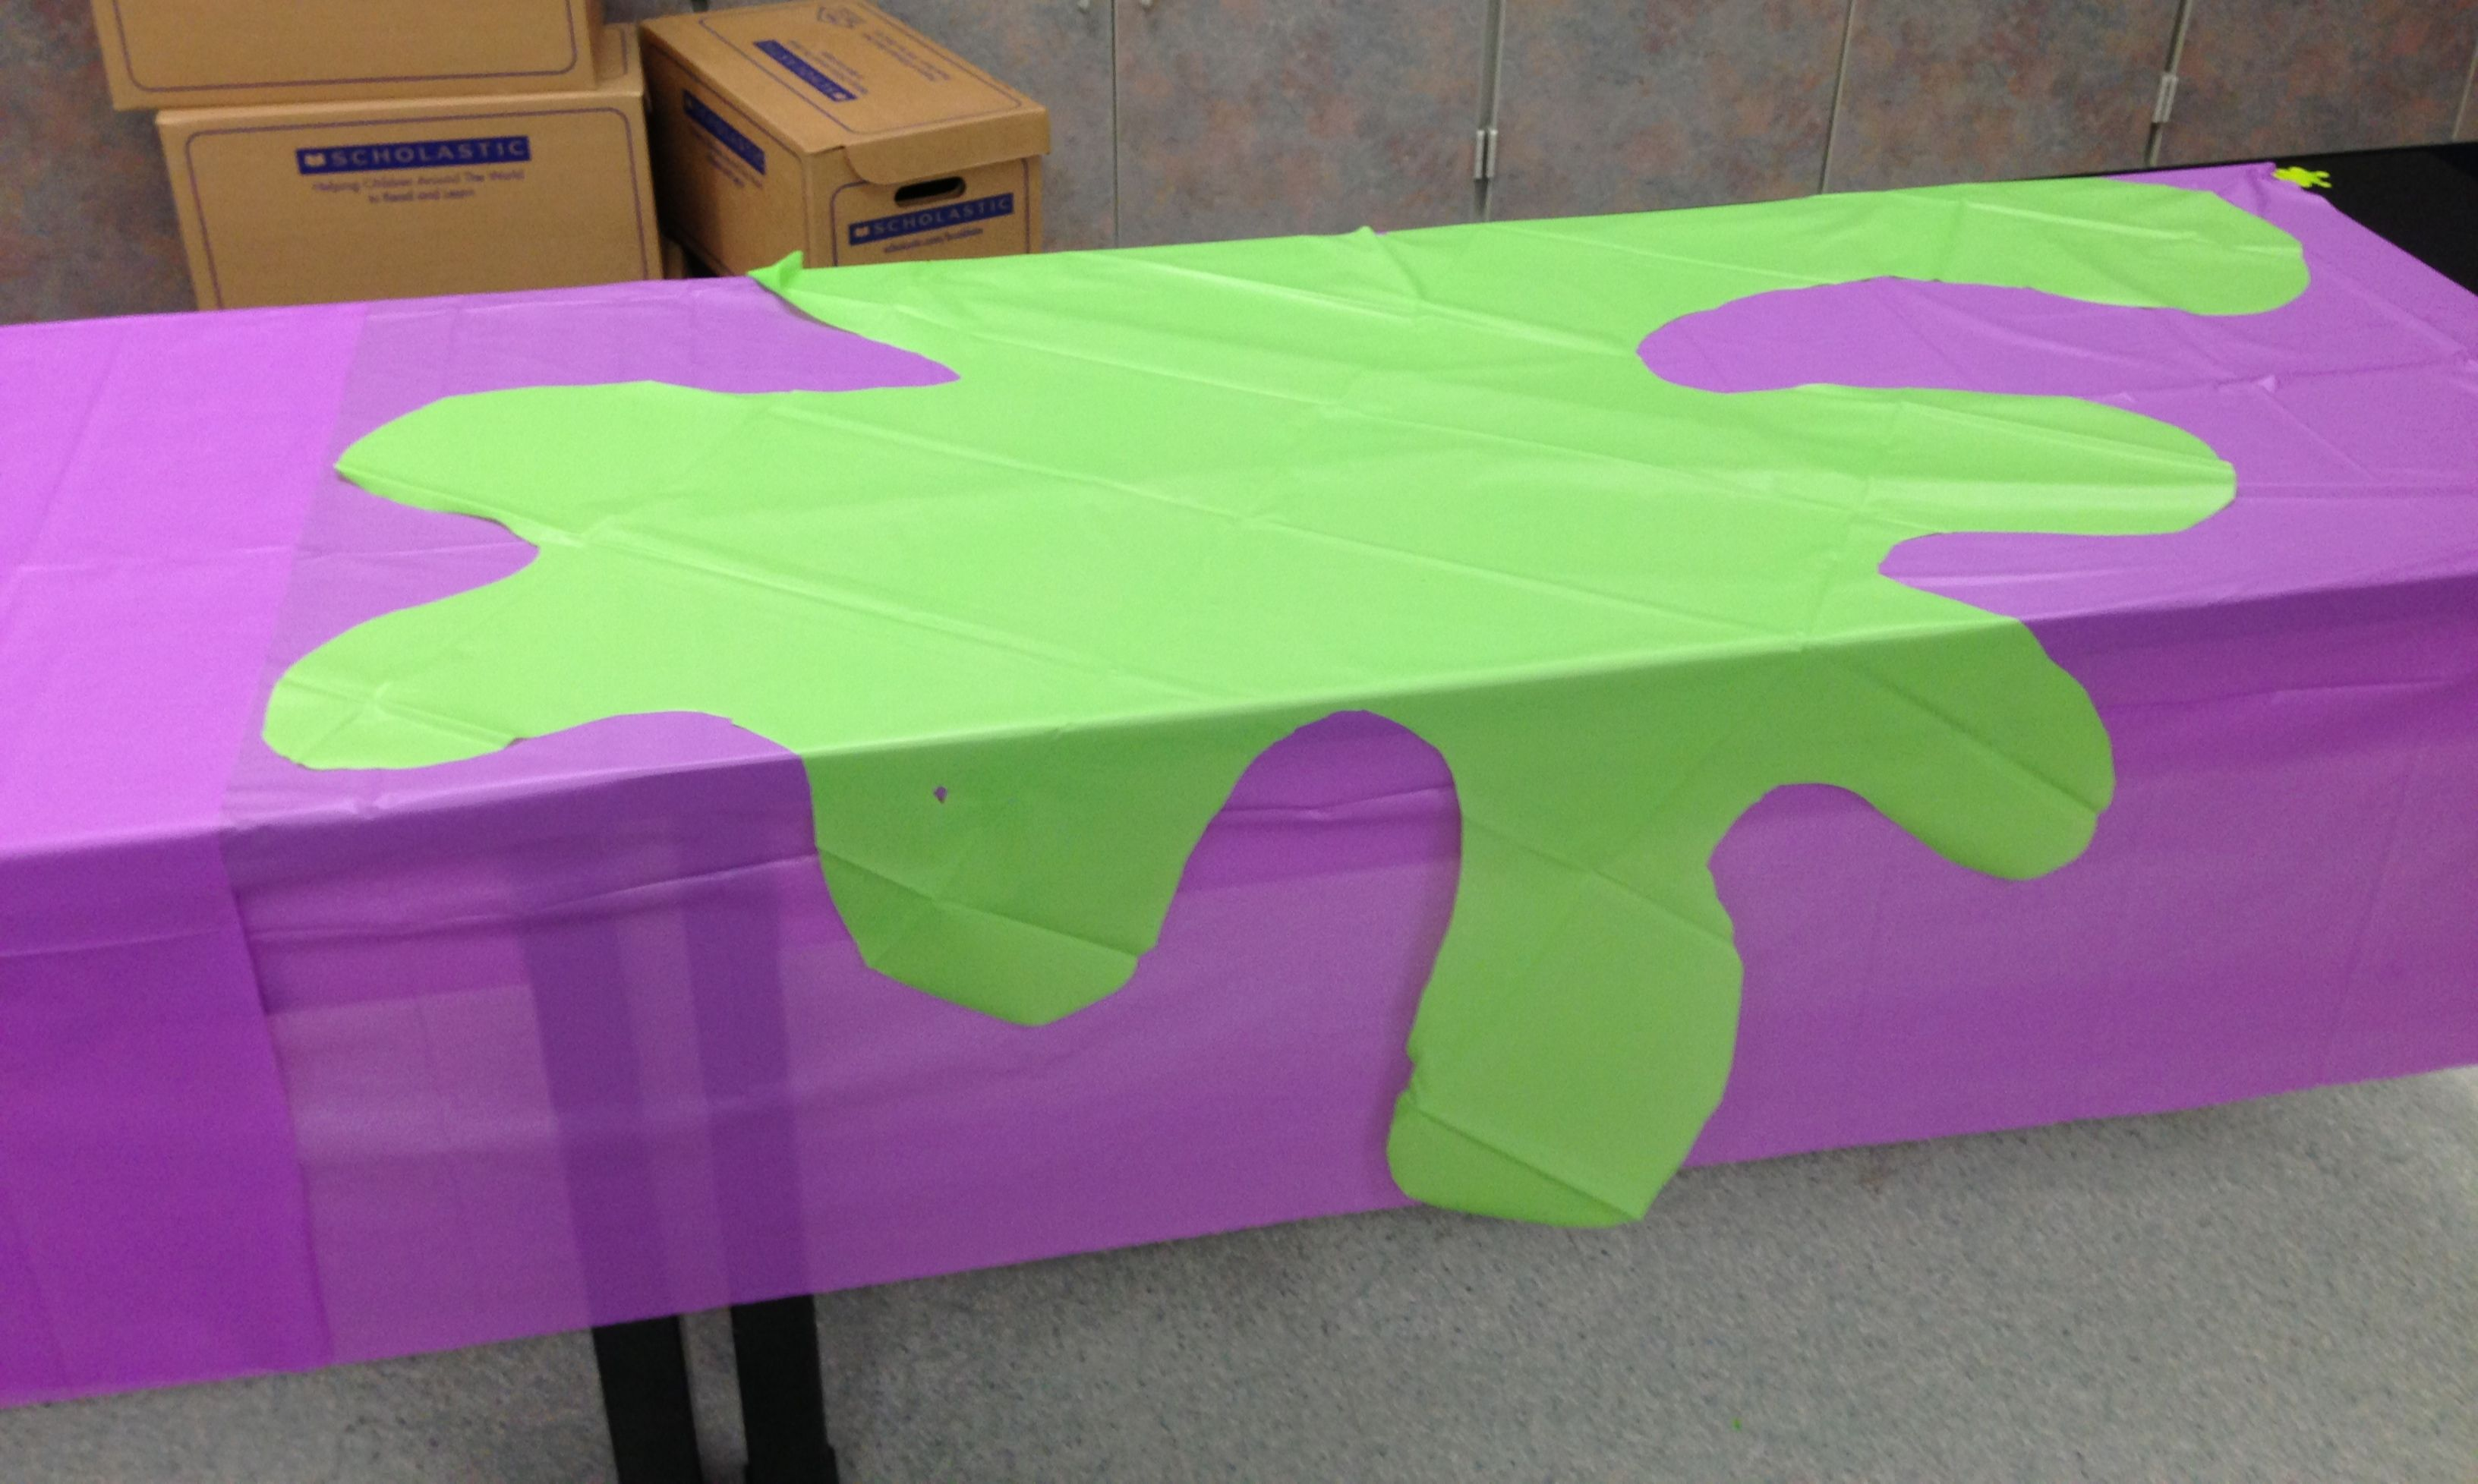 Cut Out And Layer Tablecloths To Look Like Paint Splatters